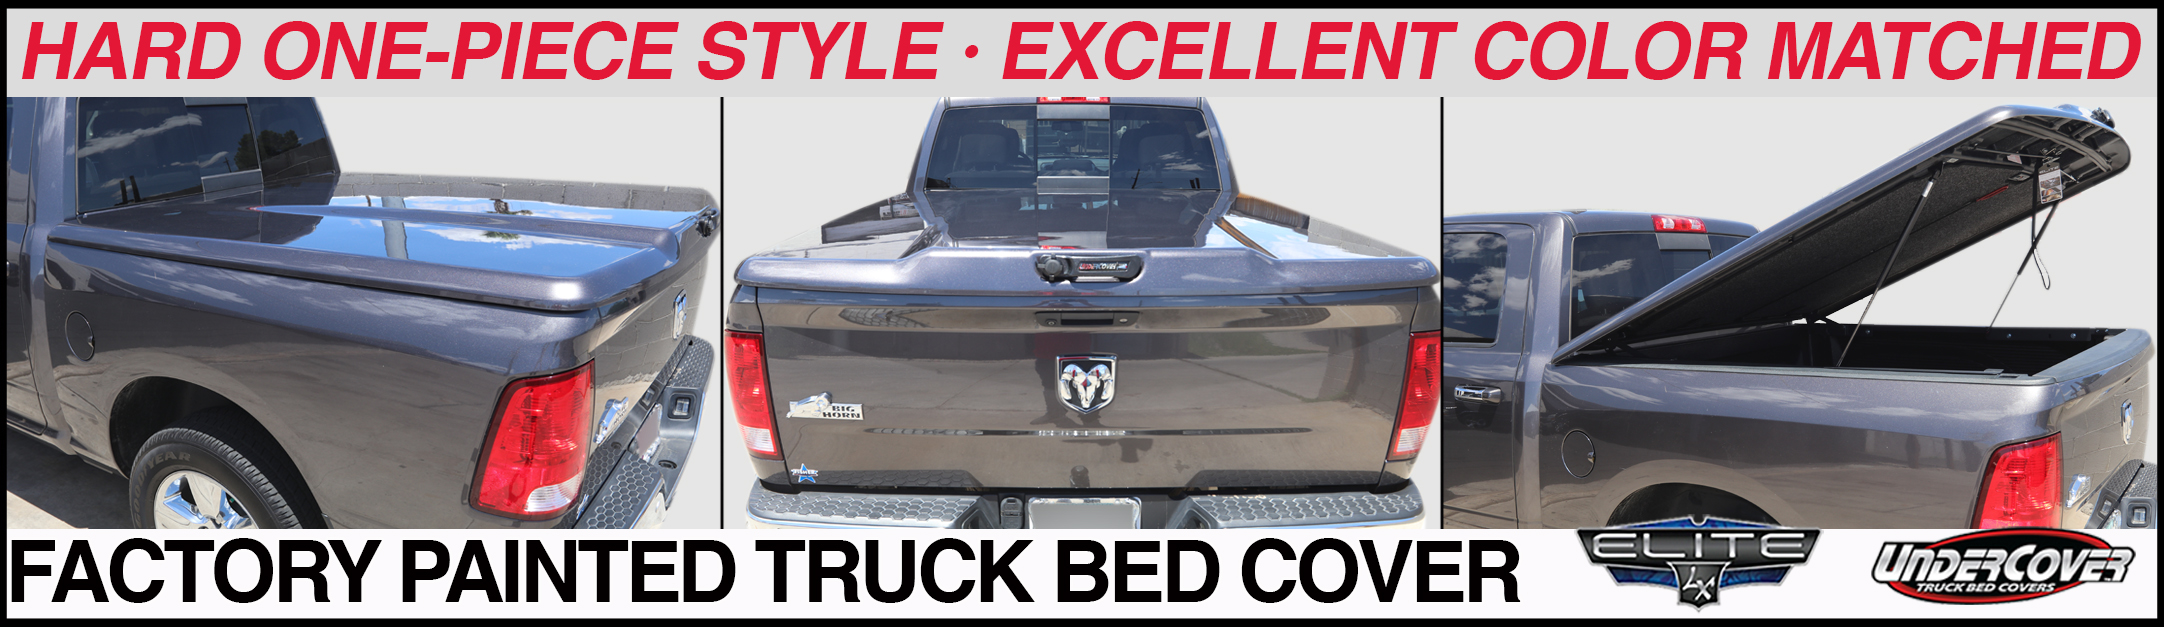 hard one piece truck bed covers